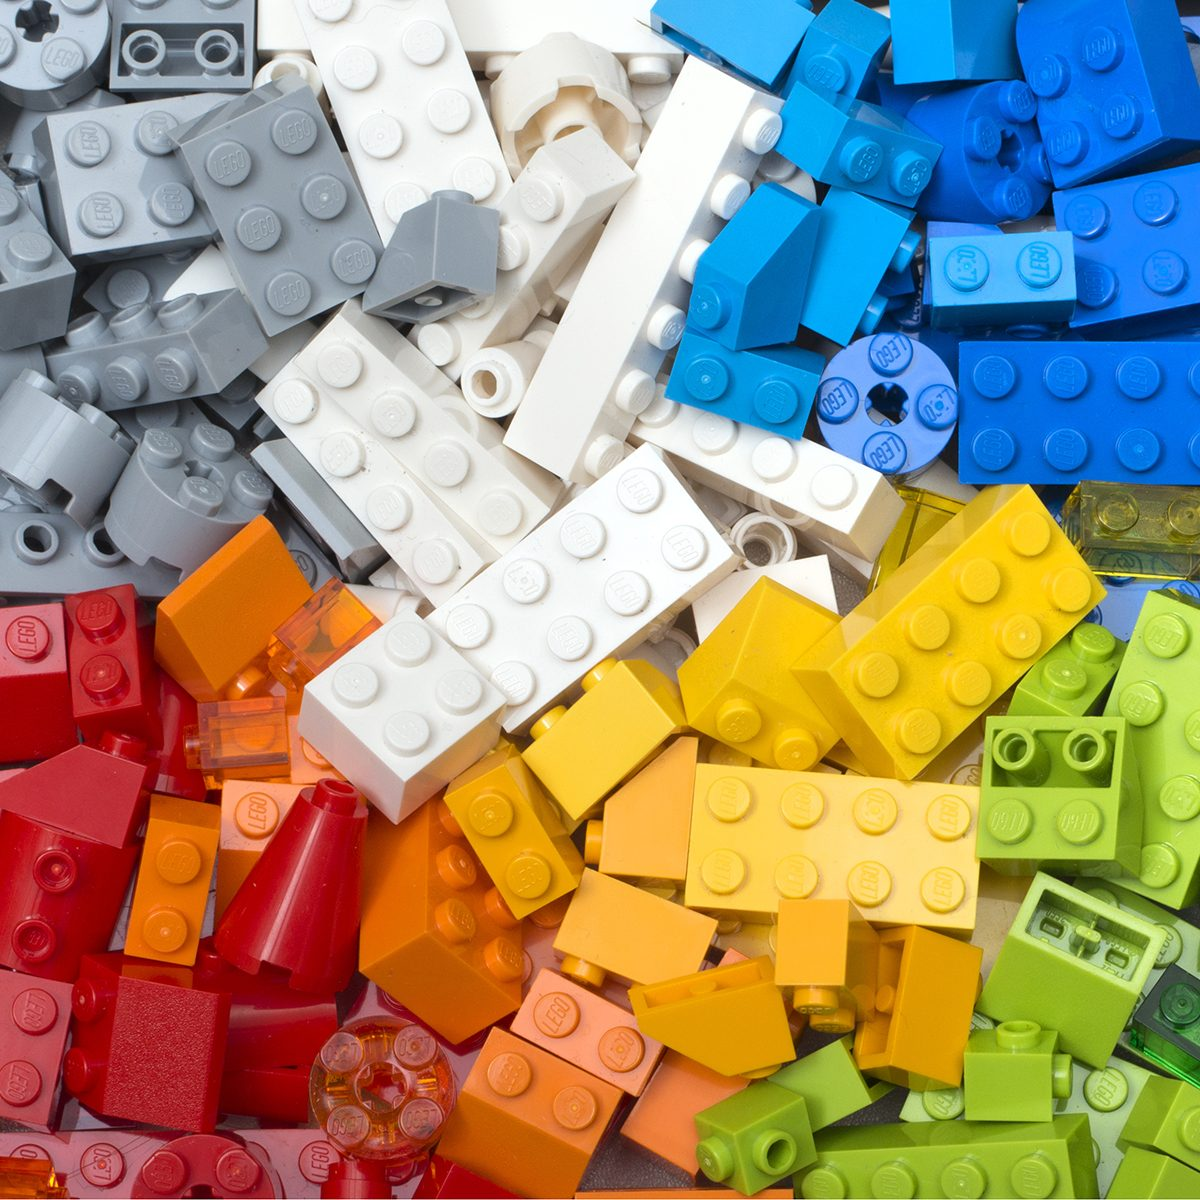 Lego is a line of plastic construction toys that are manufactured by The Lego Group